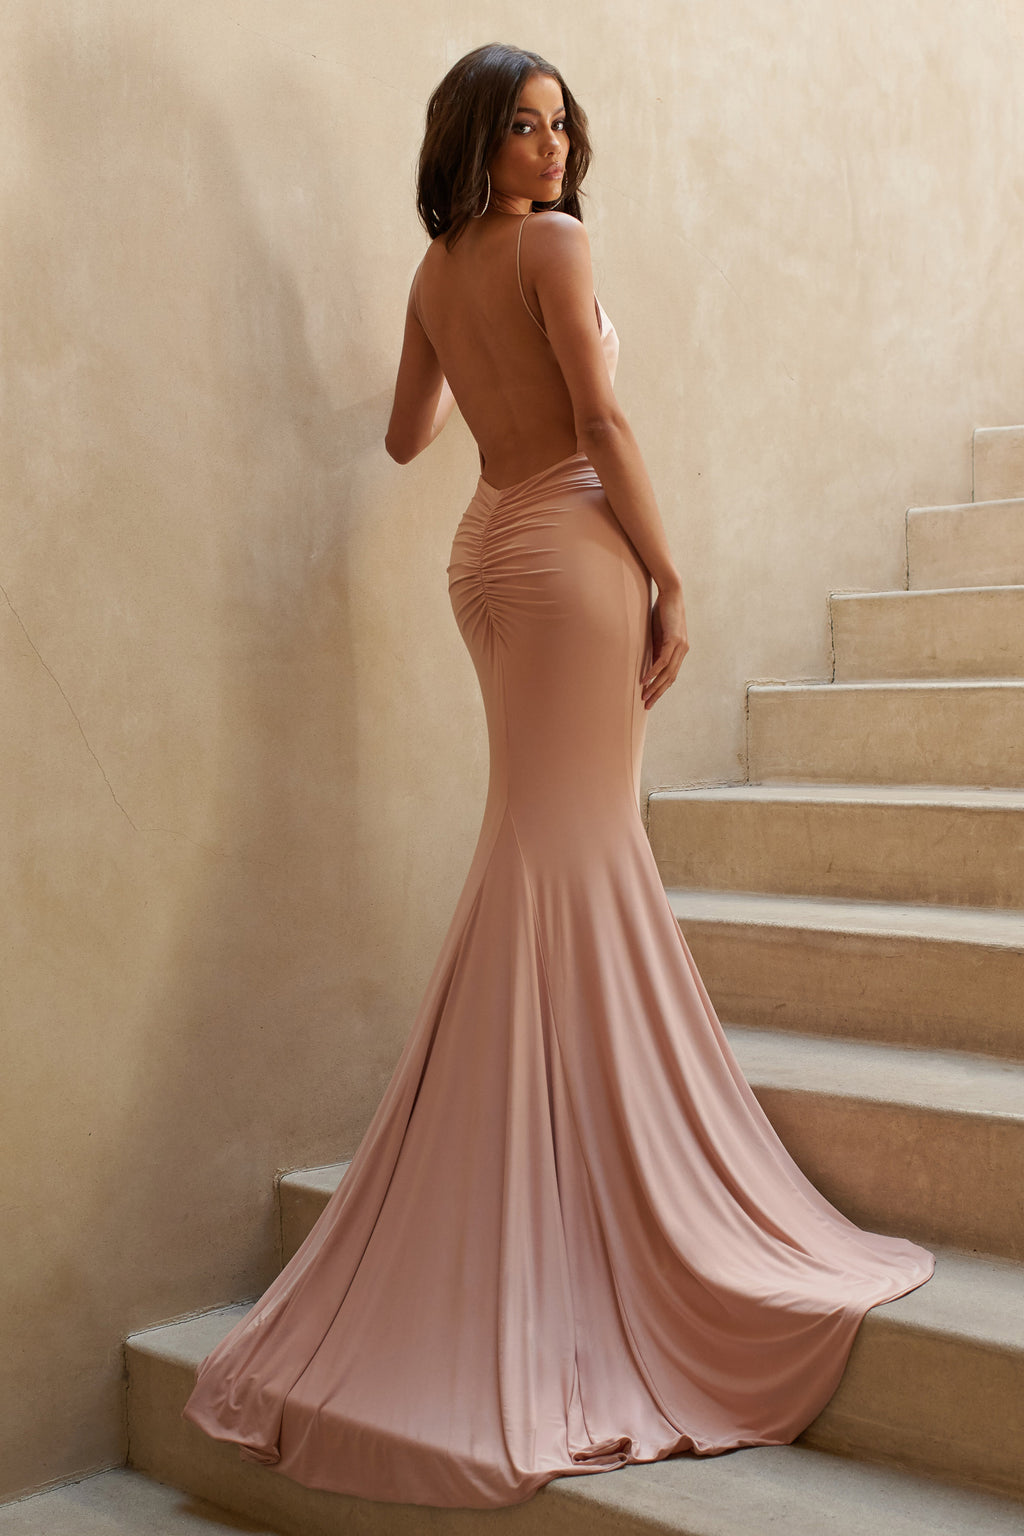 Nude Backless Bum Ruched Fishtail Maxi Dress